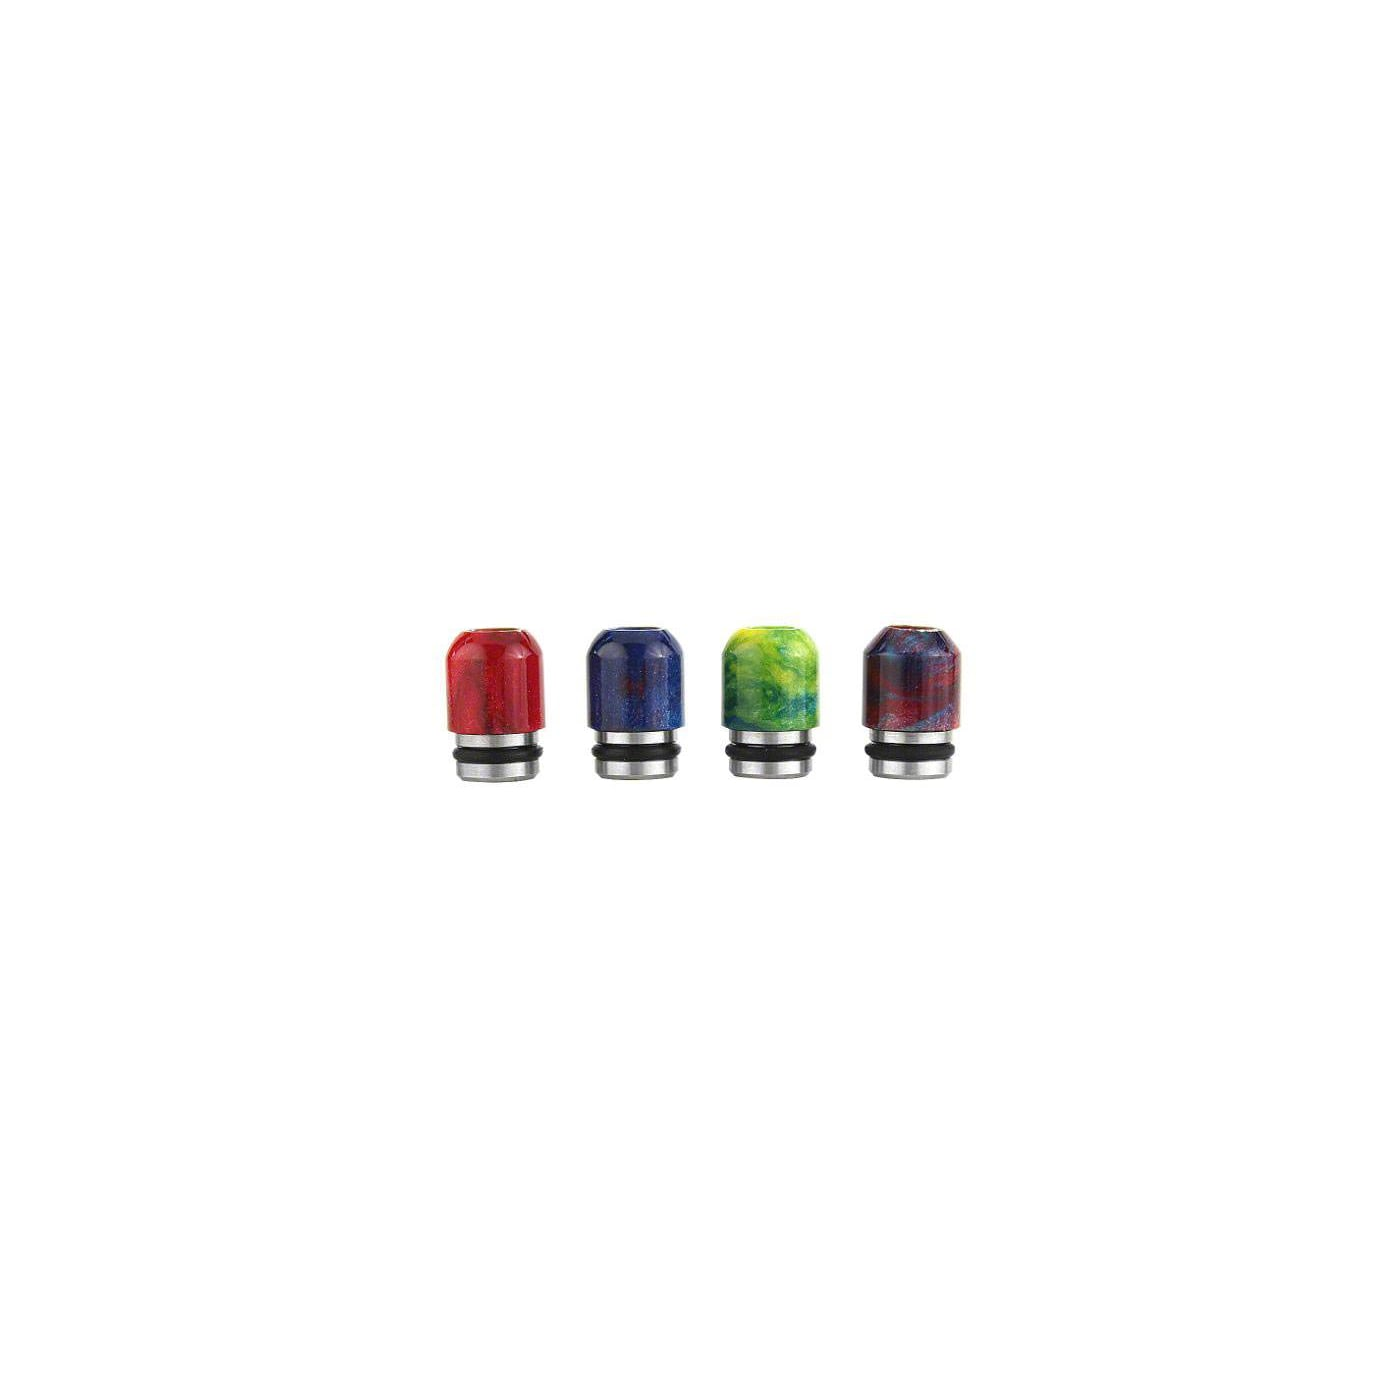 510 Resin Drip Tip - Style 109